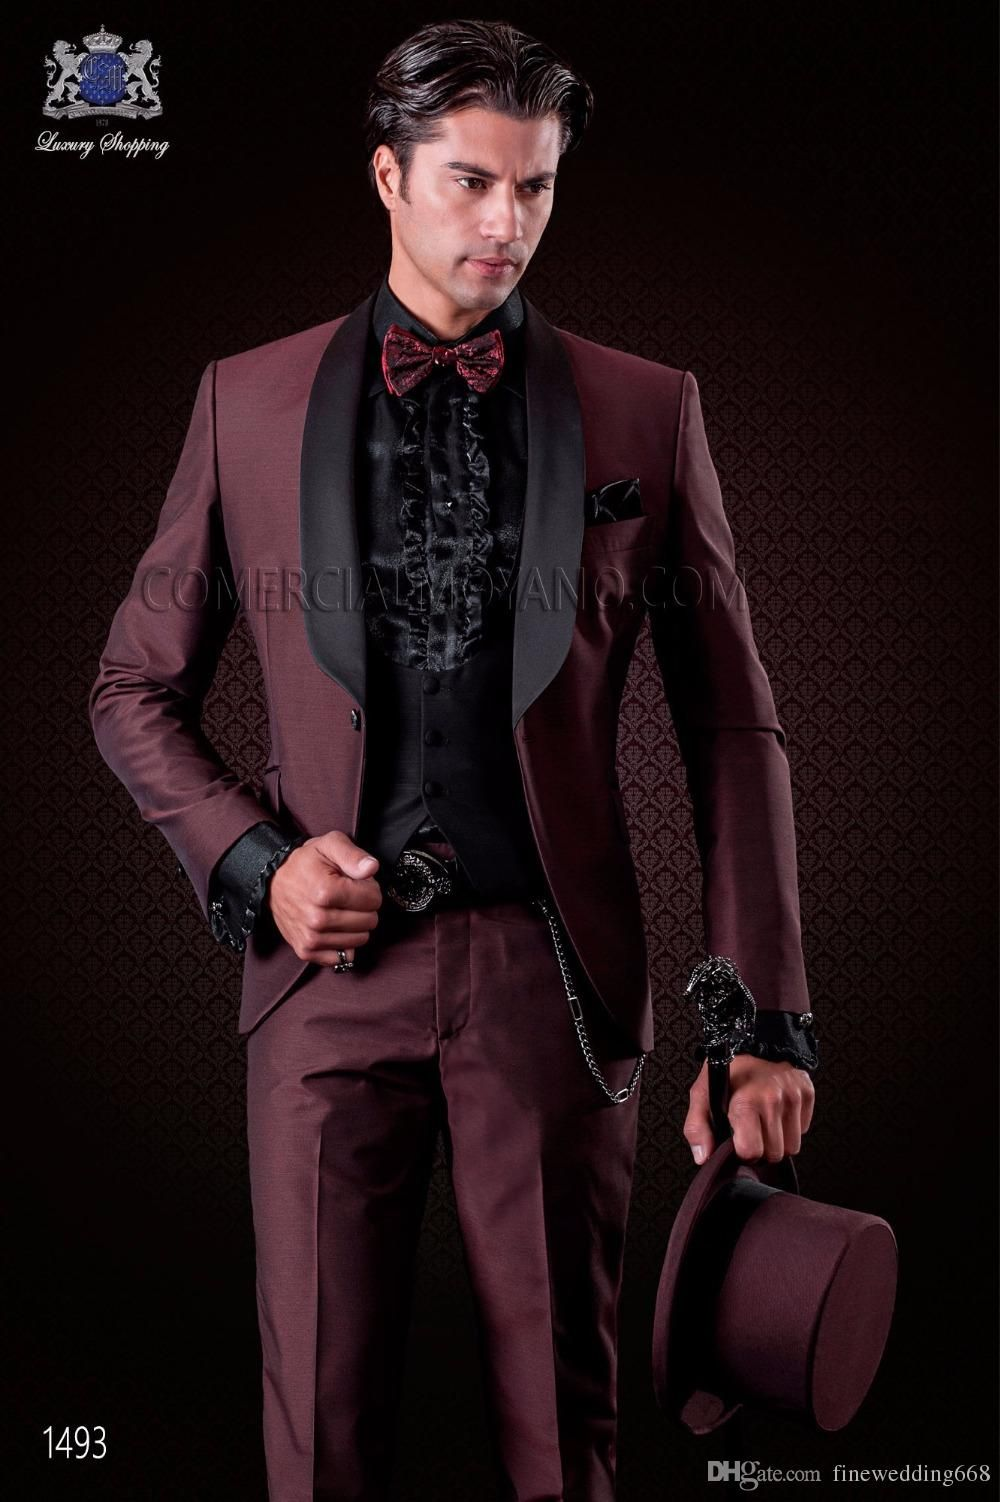 3d9e83aae7d Latest Design Custom Made Burgundy Wedding Suits Handsome Tuxedos Formal  Suits Business Wears Best Man Suits Jacket+Pants+Vests Menswear Tuxedos  From ...